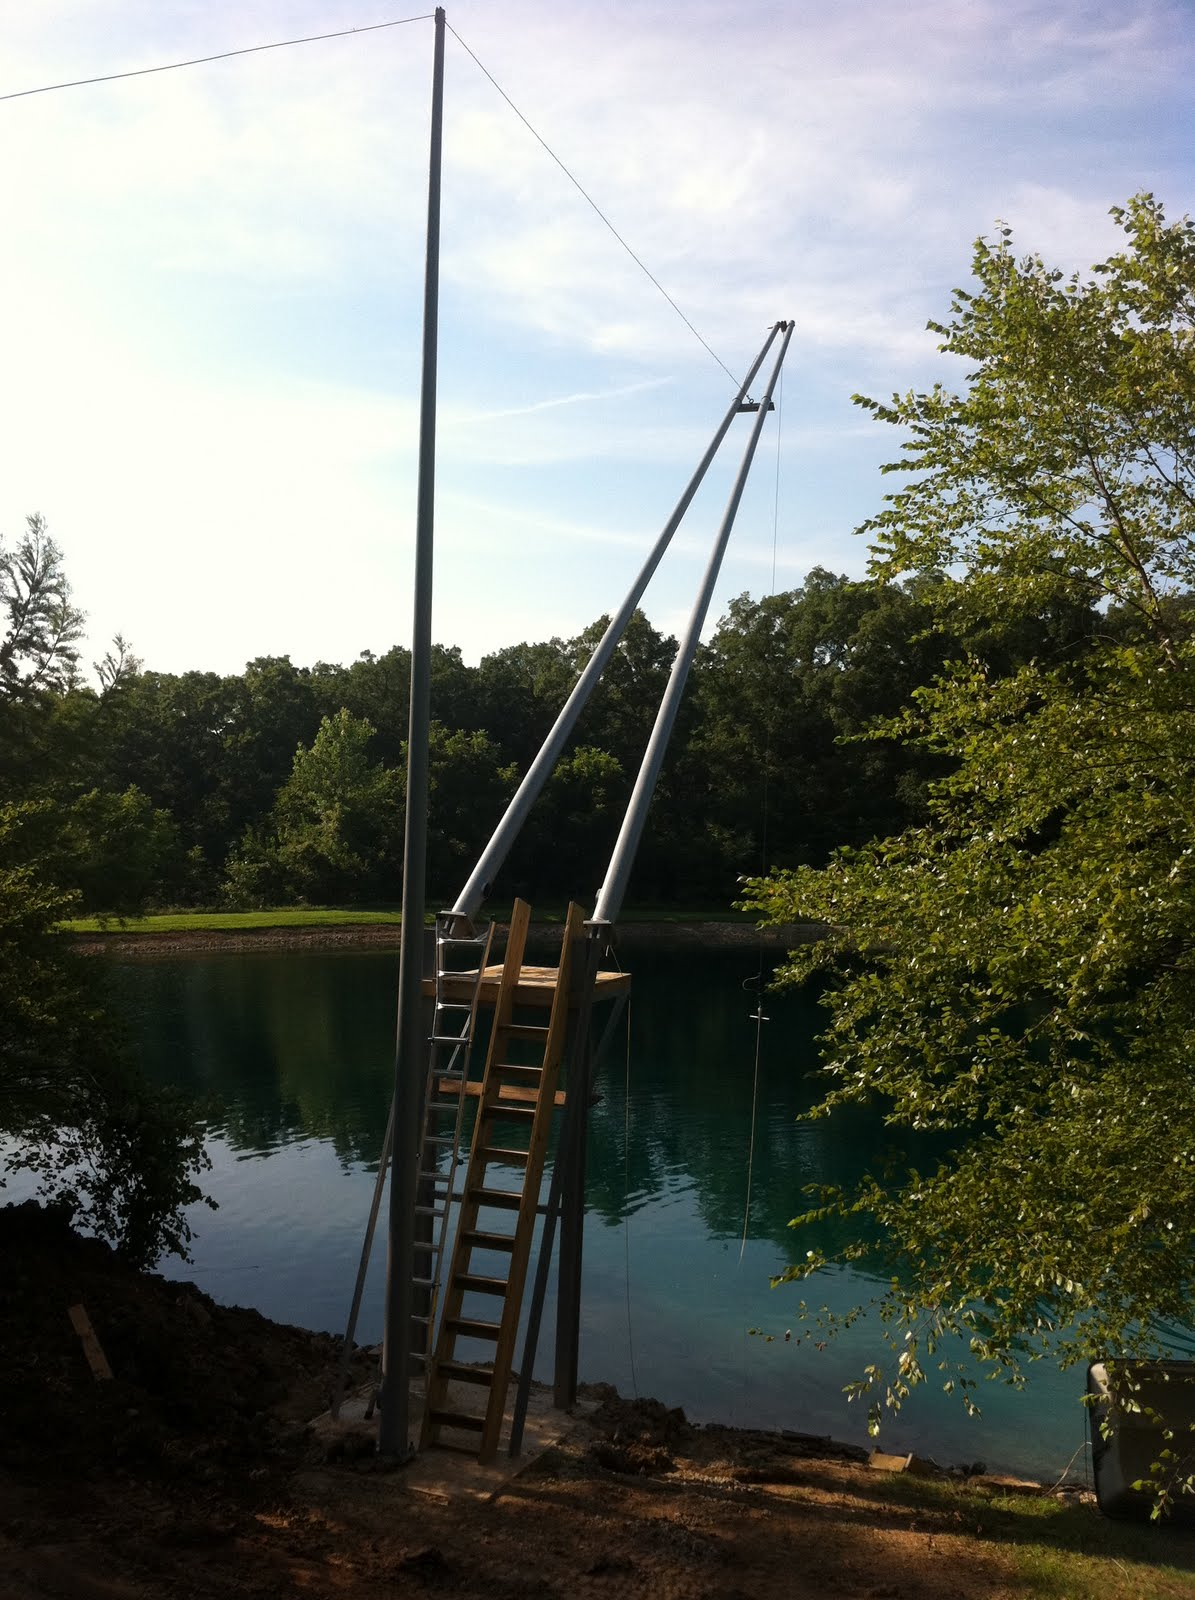 Nate's Fishing Blog: Perfect Pond Rope Swing